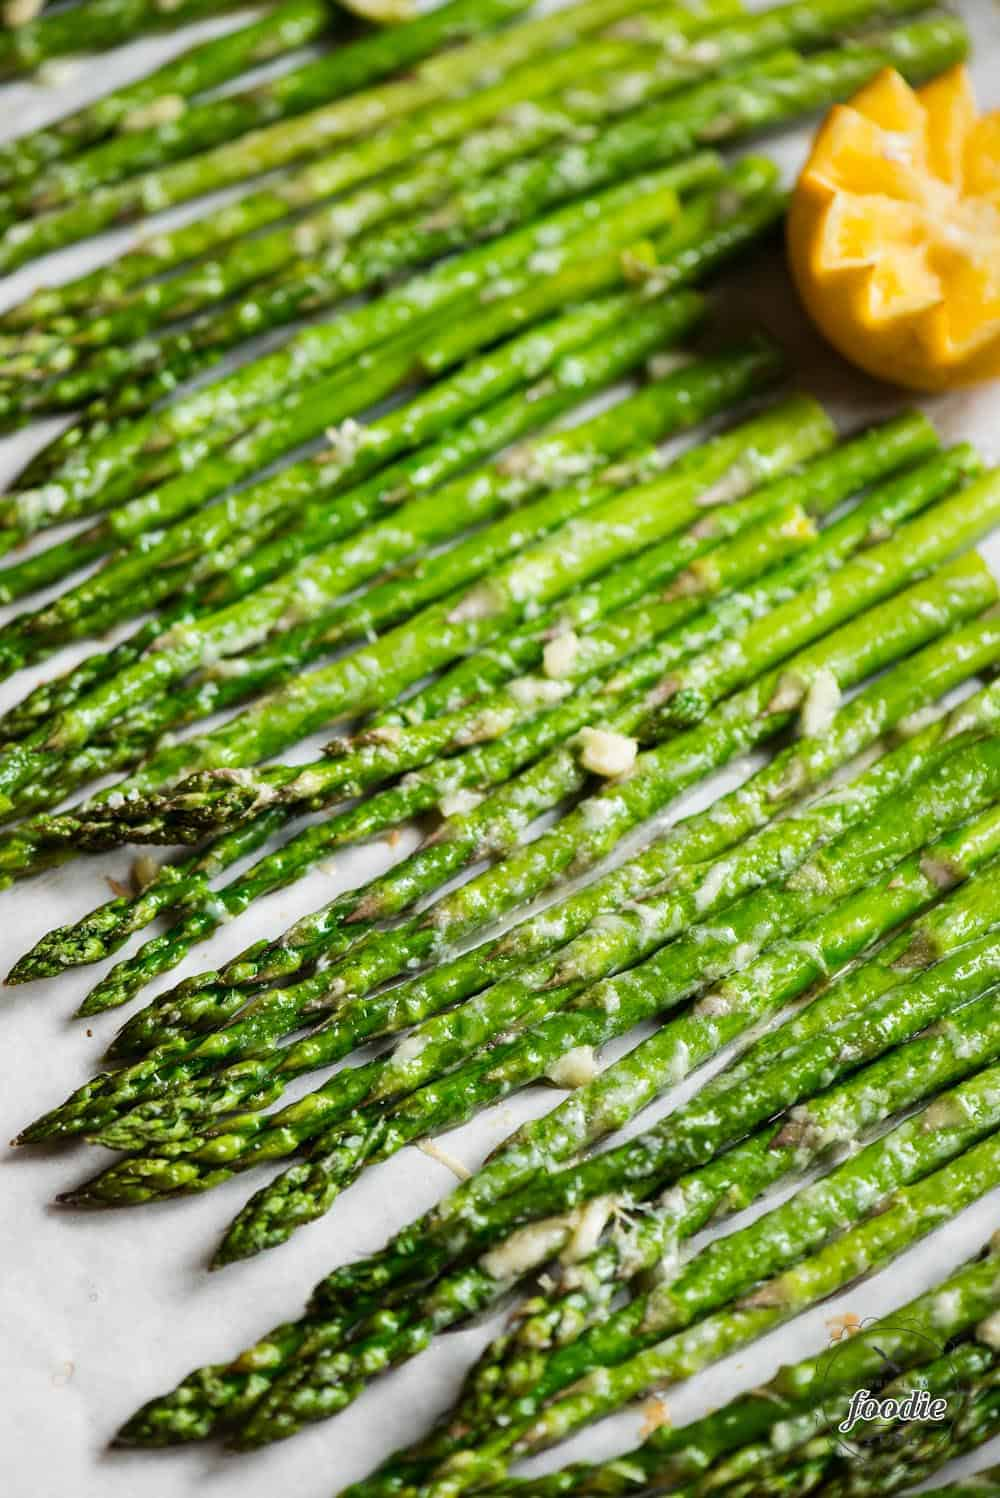 Garlic Parmesan Roasted Asparagus baked in oven